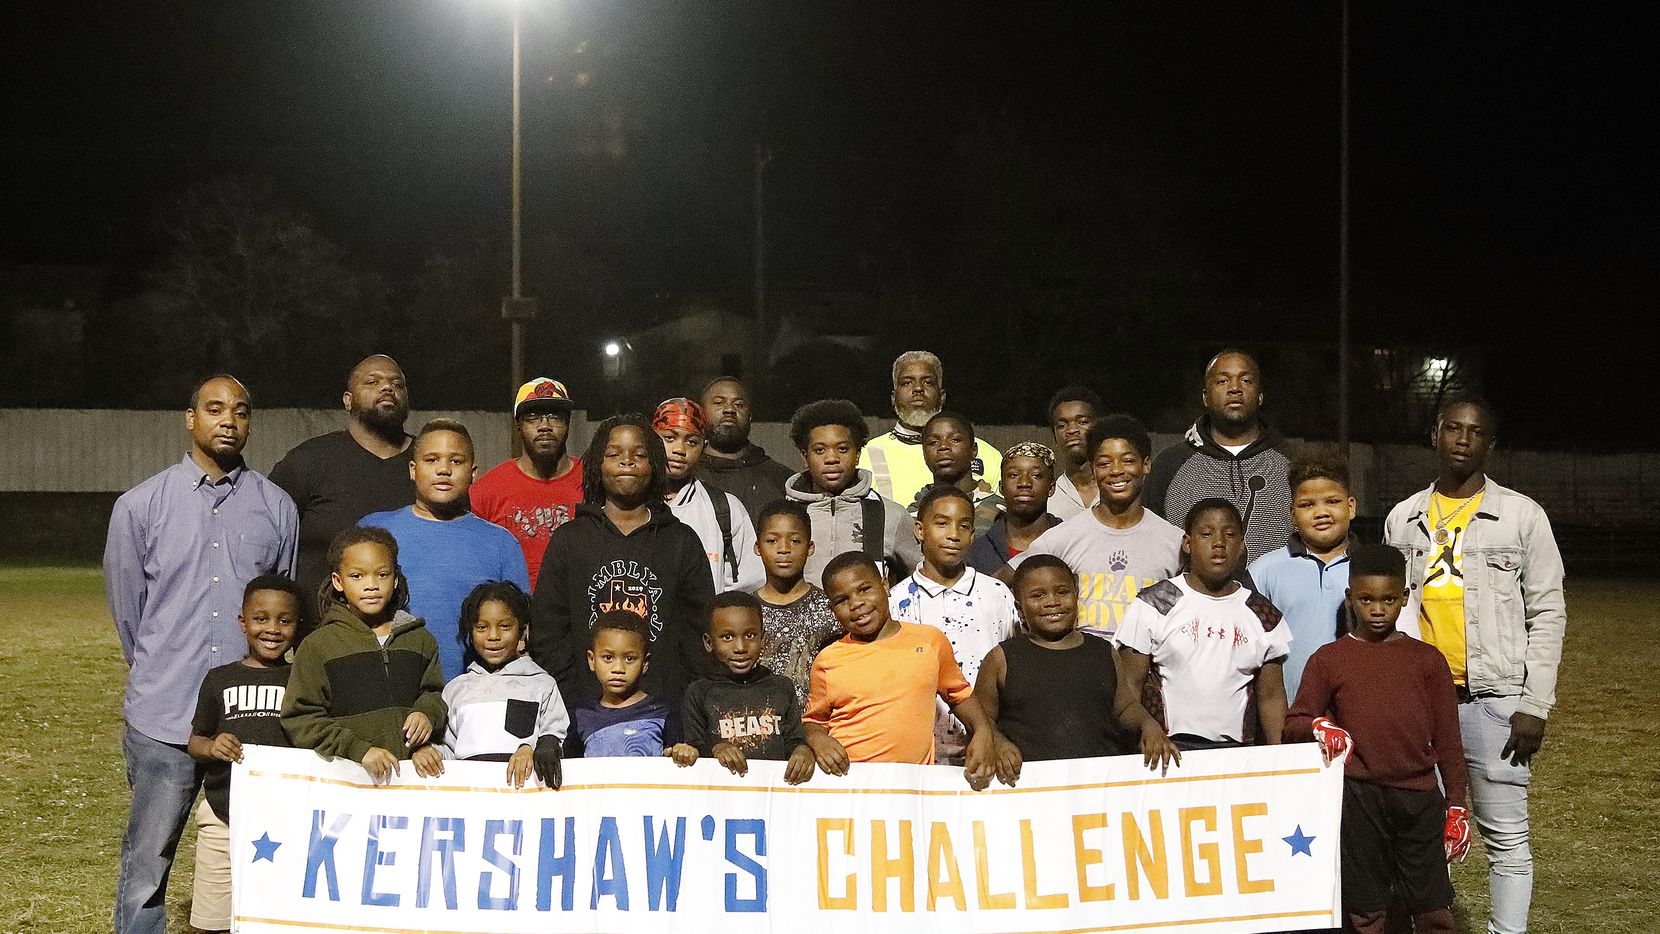 Youths and coaches at the Cedar Crest Community Center in Dallas on Tuesday, November 24, 2020. Kershaw is one of several donors contributing to the restoration of the shuttered facility.